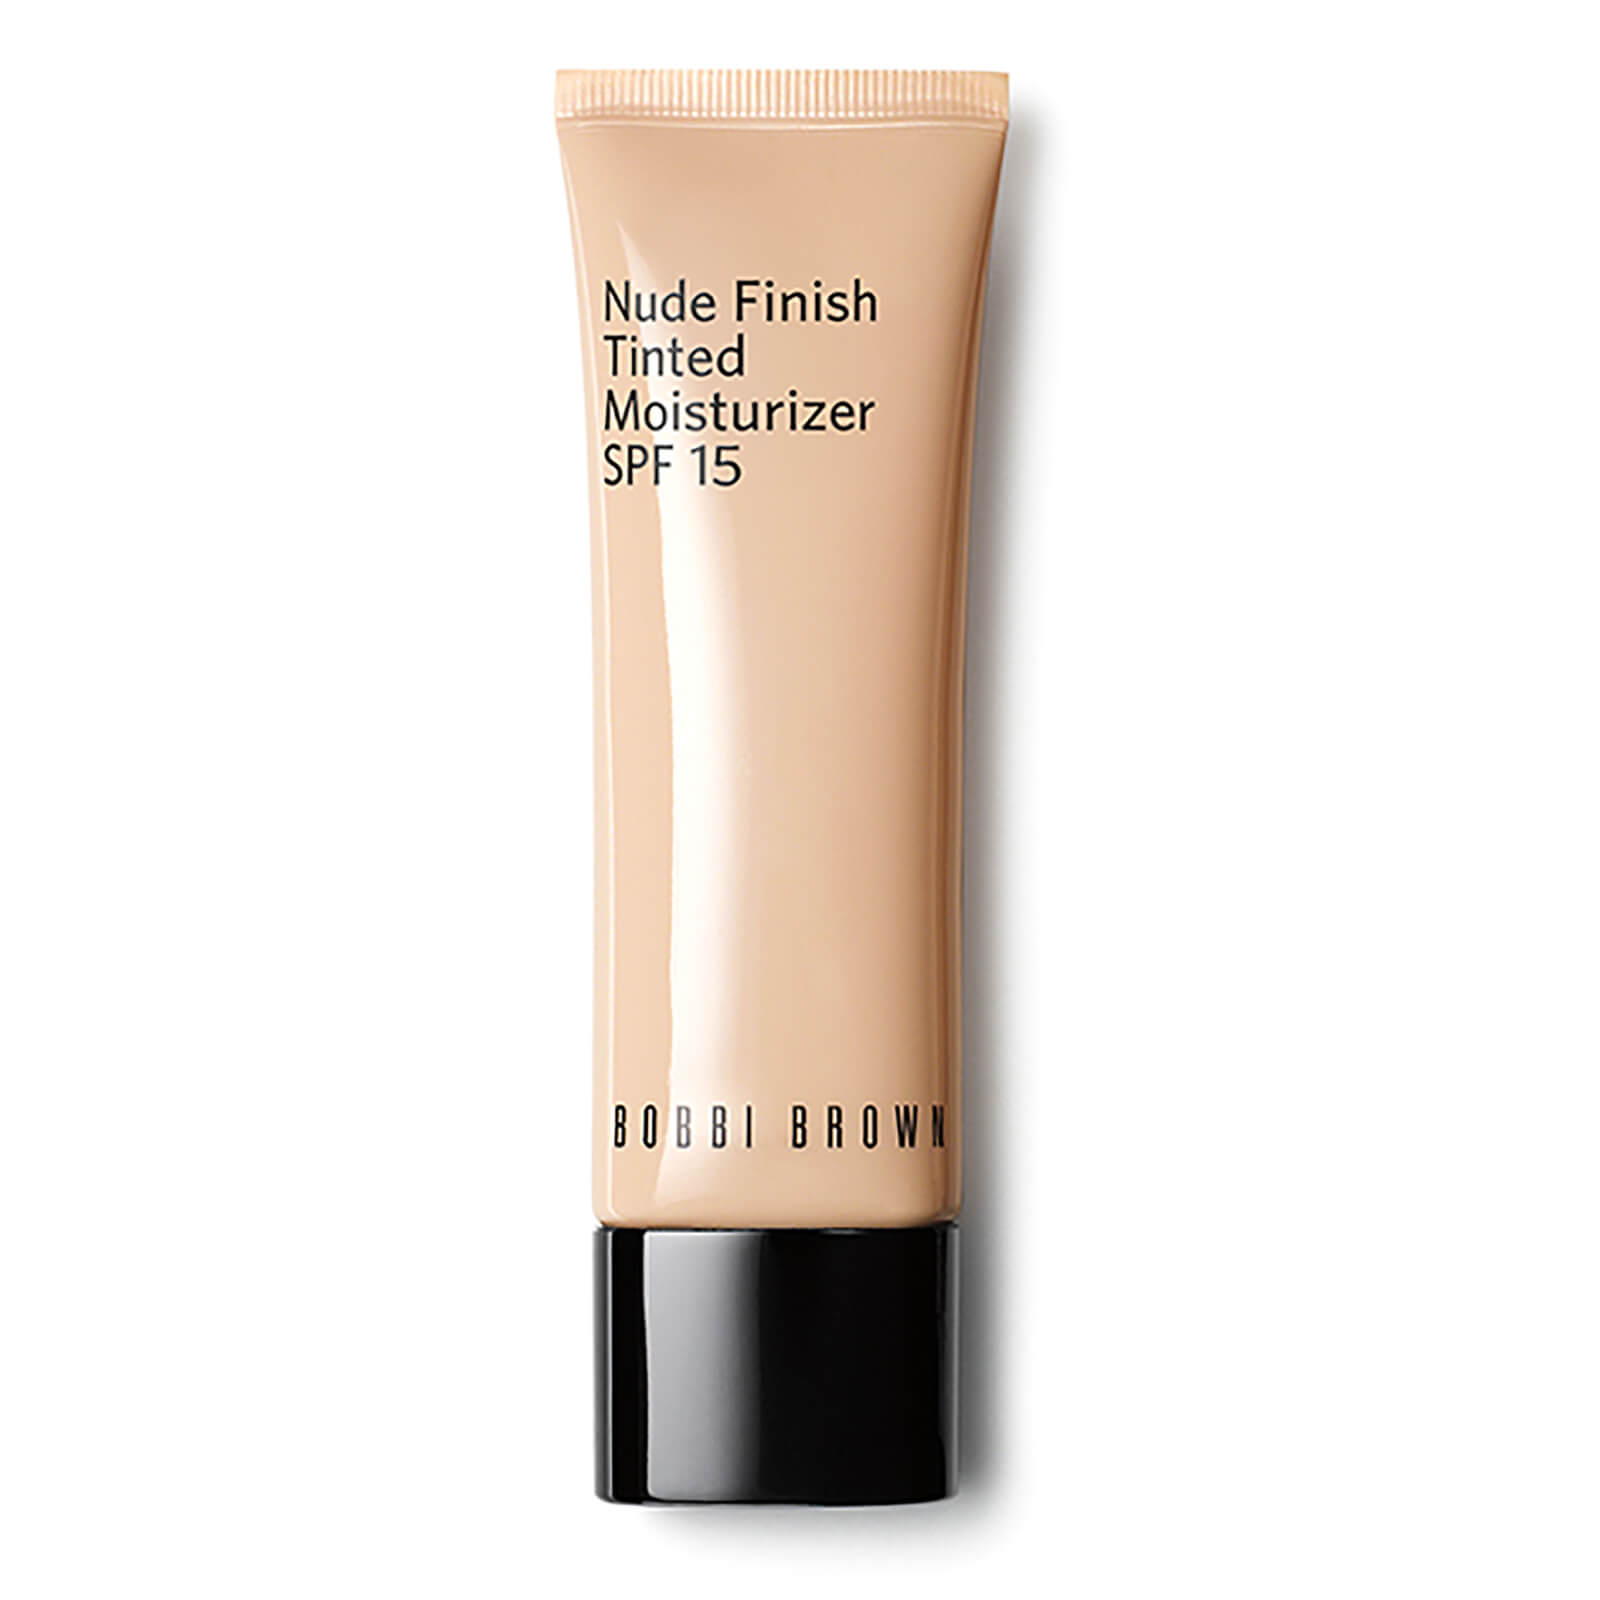 Nude Look Bobbi Brown Nude Finish Tinted Moisturiser Spf15 50ml (various Shades) - Lookfantastic